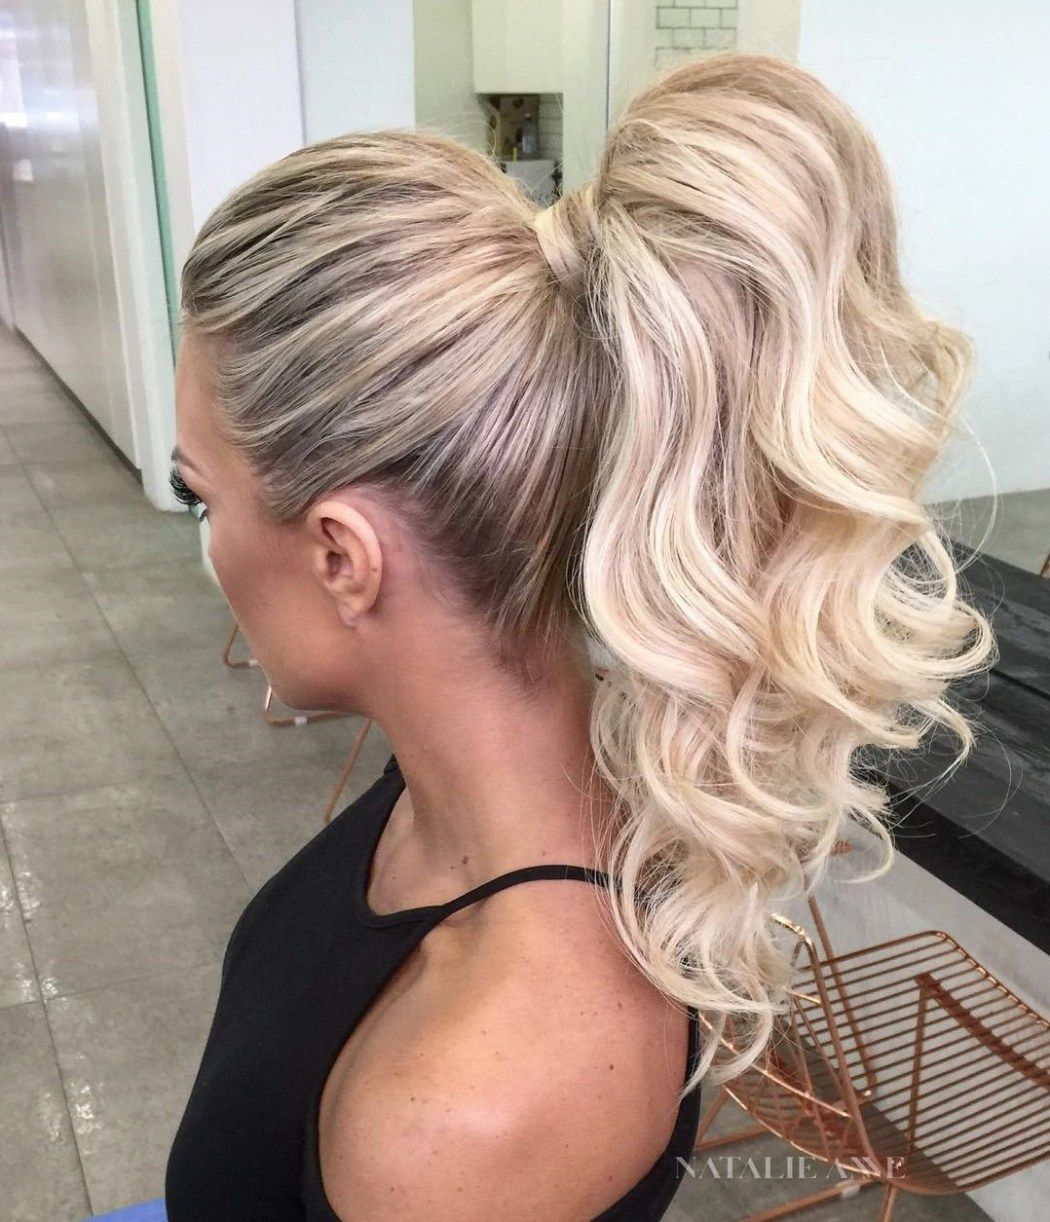 the 20 most alluring ponytail hairstyles | pony tails in